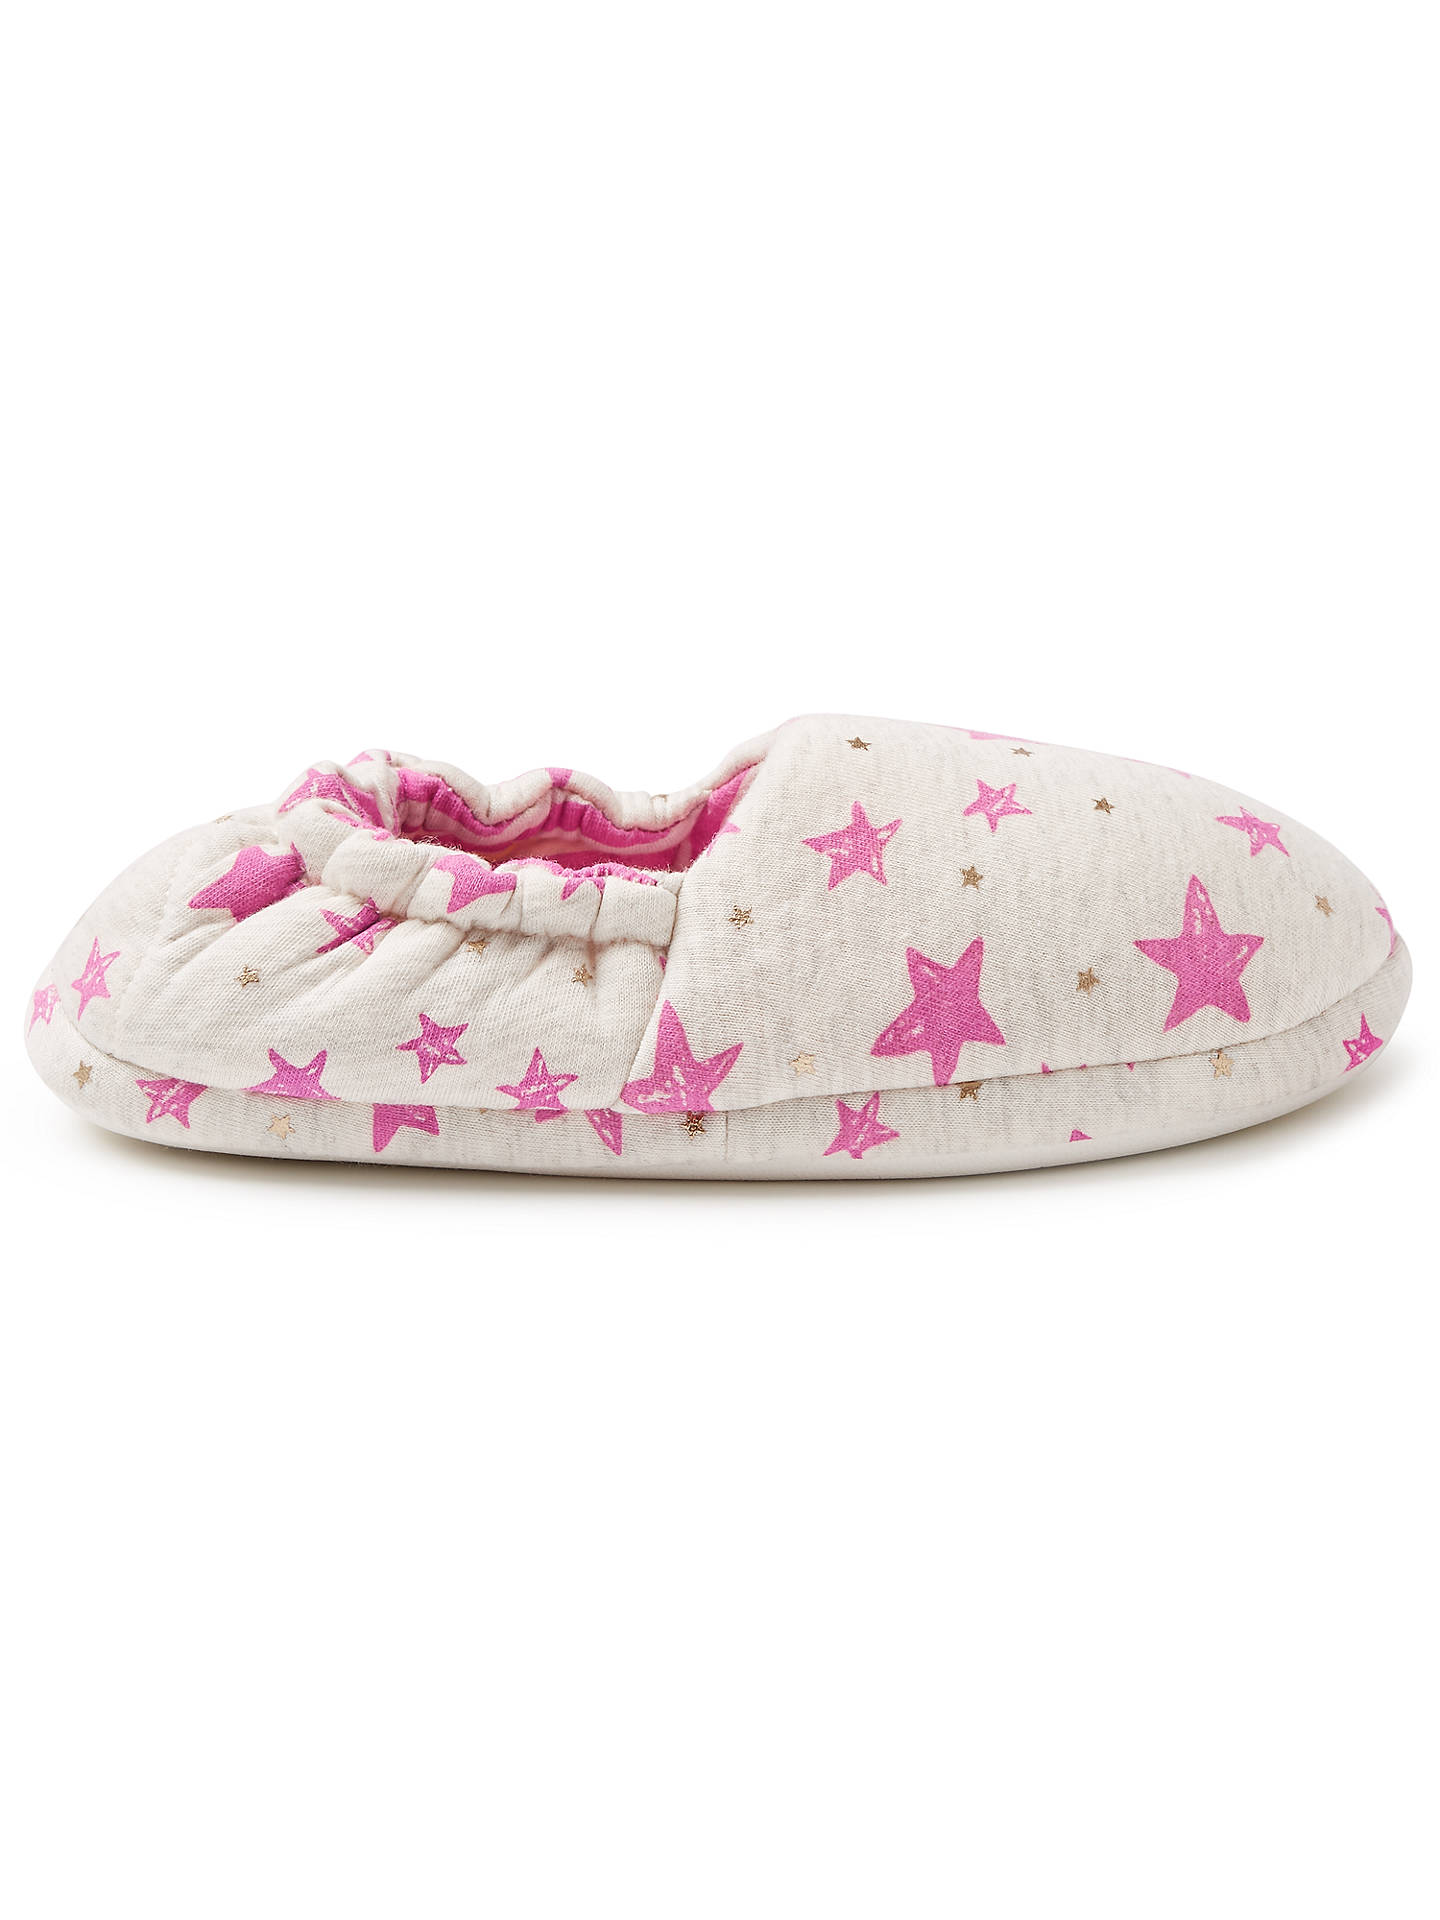 BuyJohn Lewis & Partners Children's Star Slippers, Pink/Grey, 8 Jnr Online at johnlewis.com